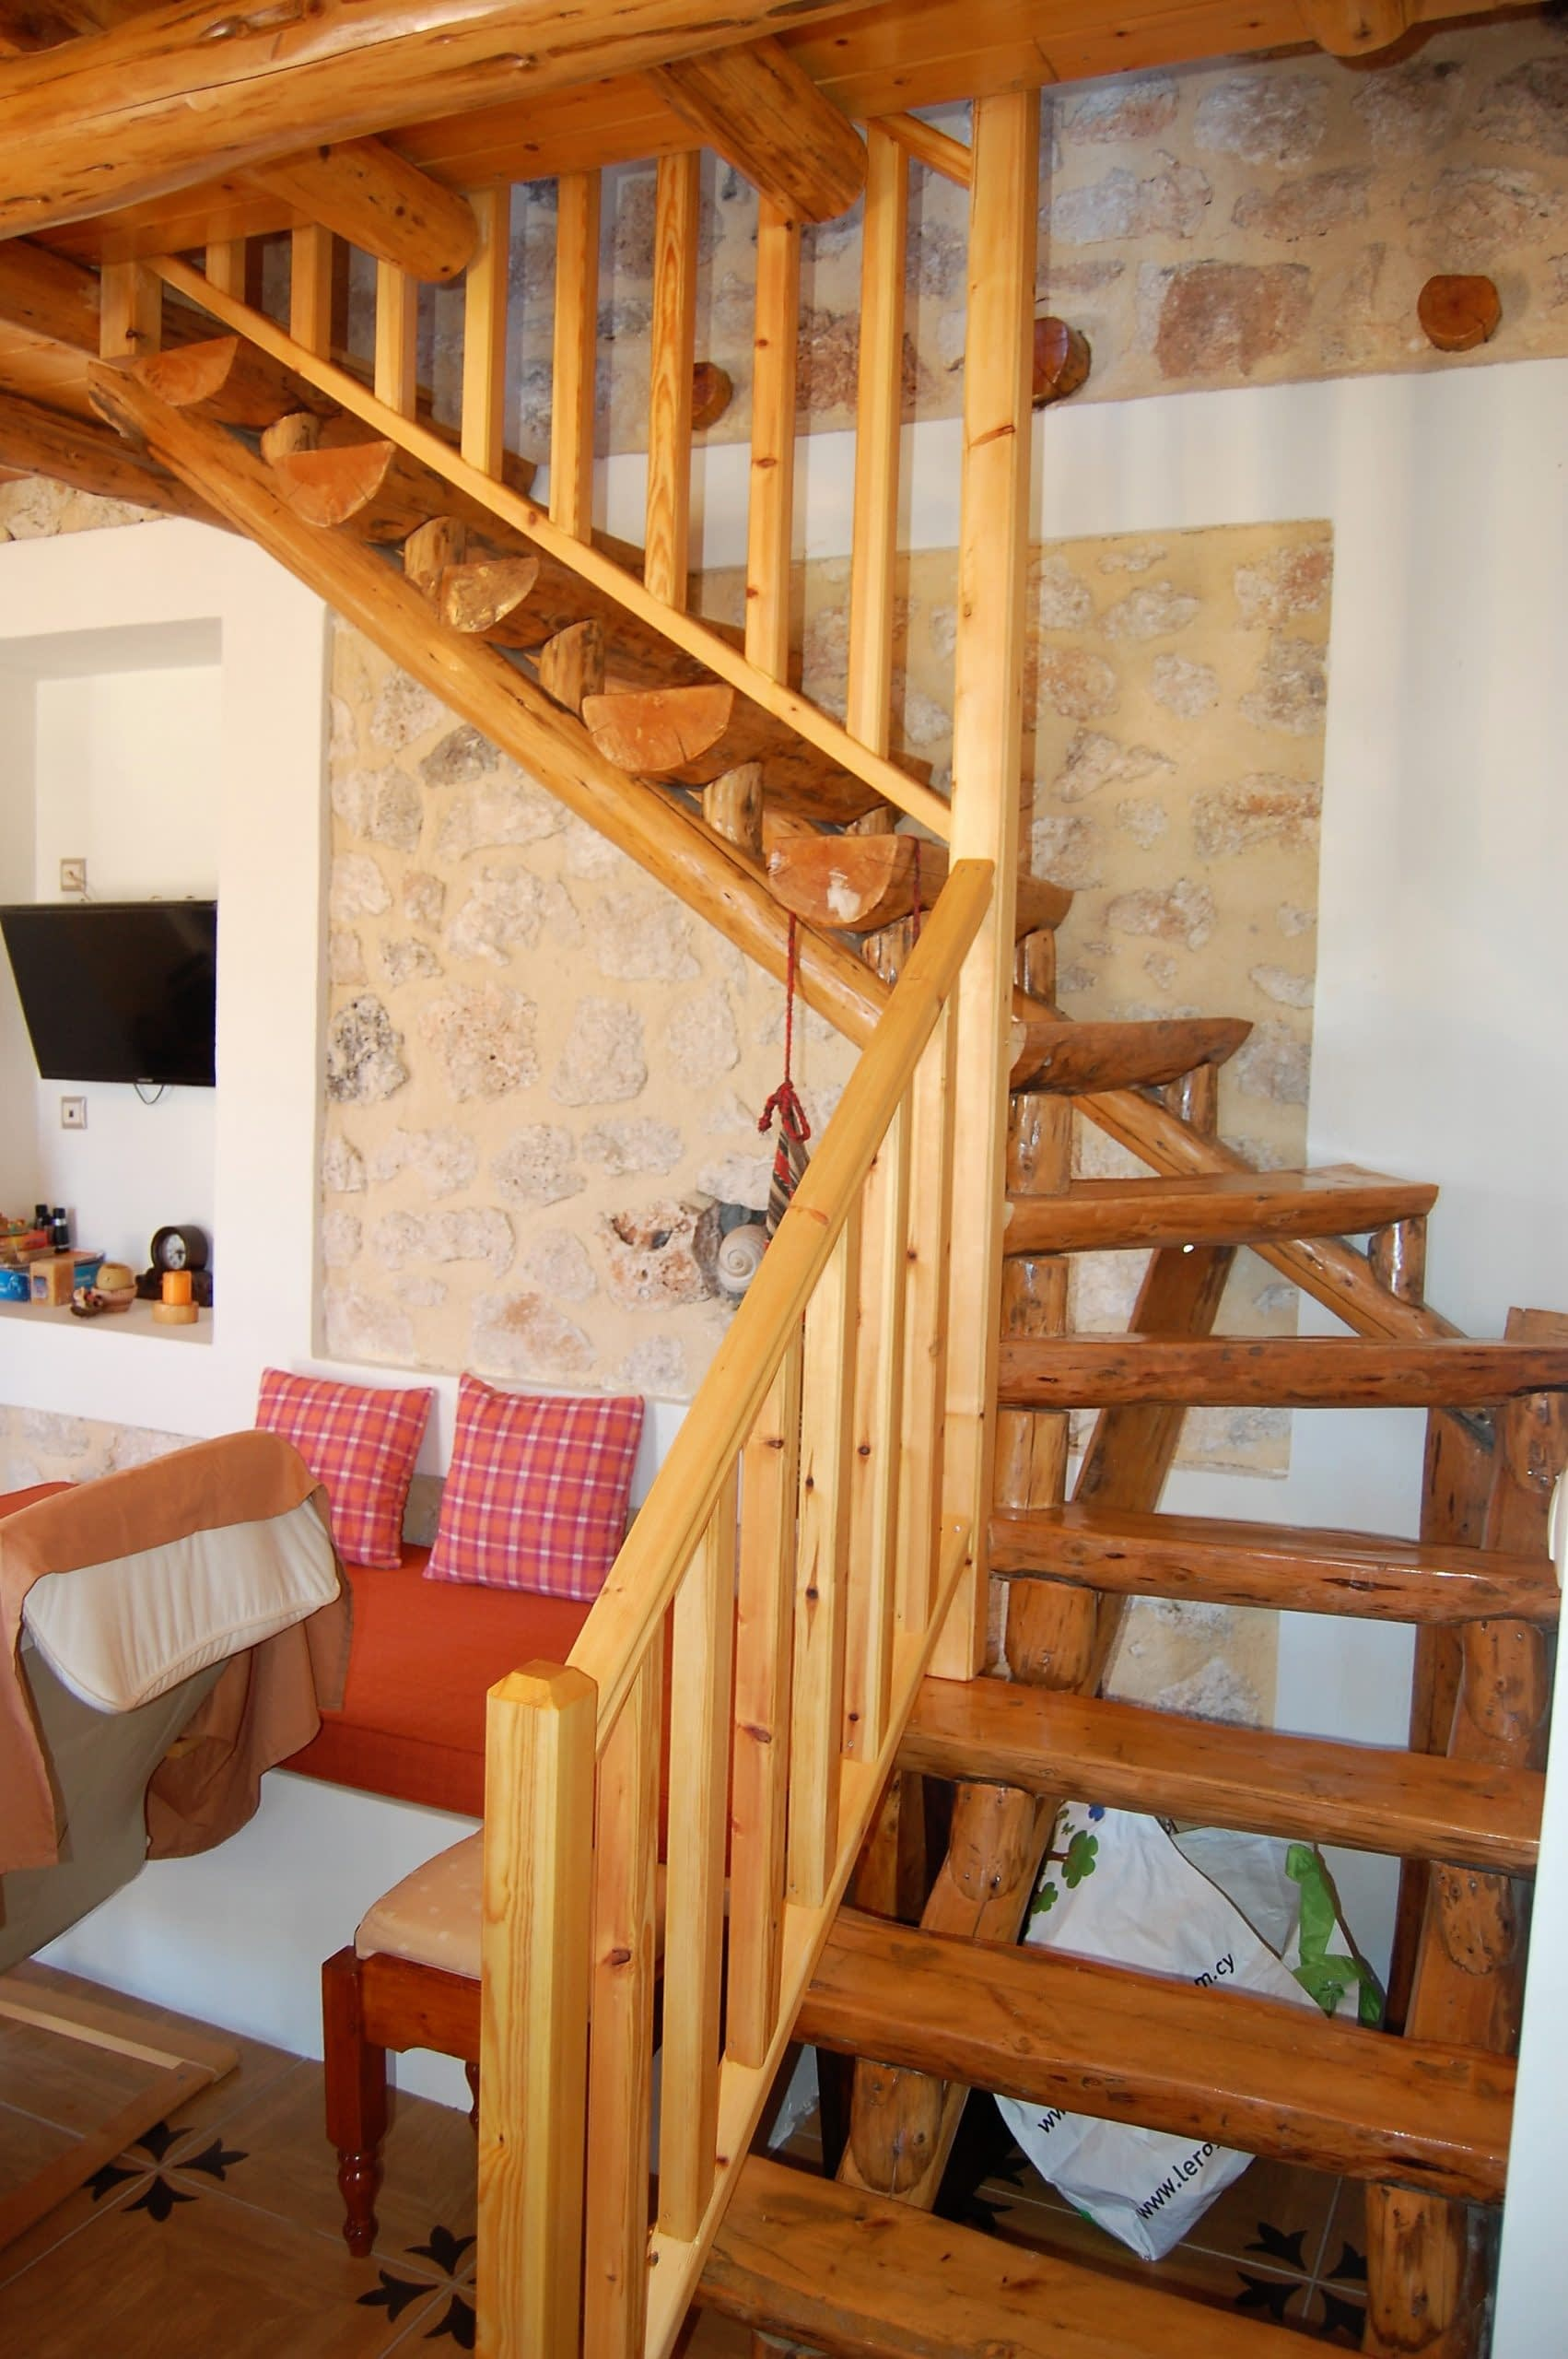 Open plan lounge with wooden staircase of stone house for rent Ithaca Greece